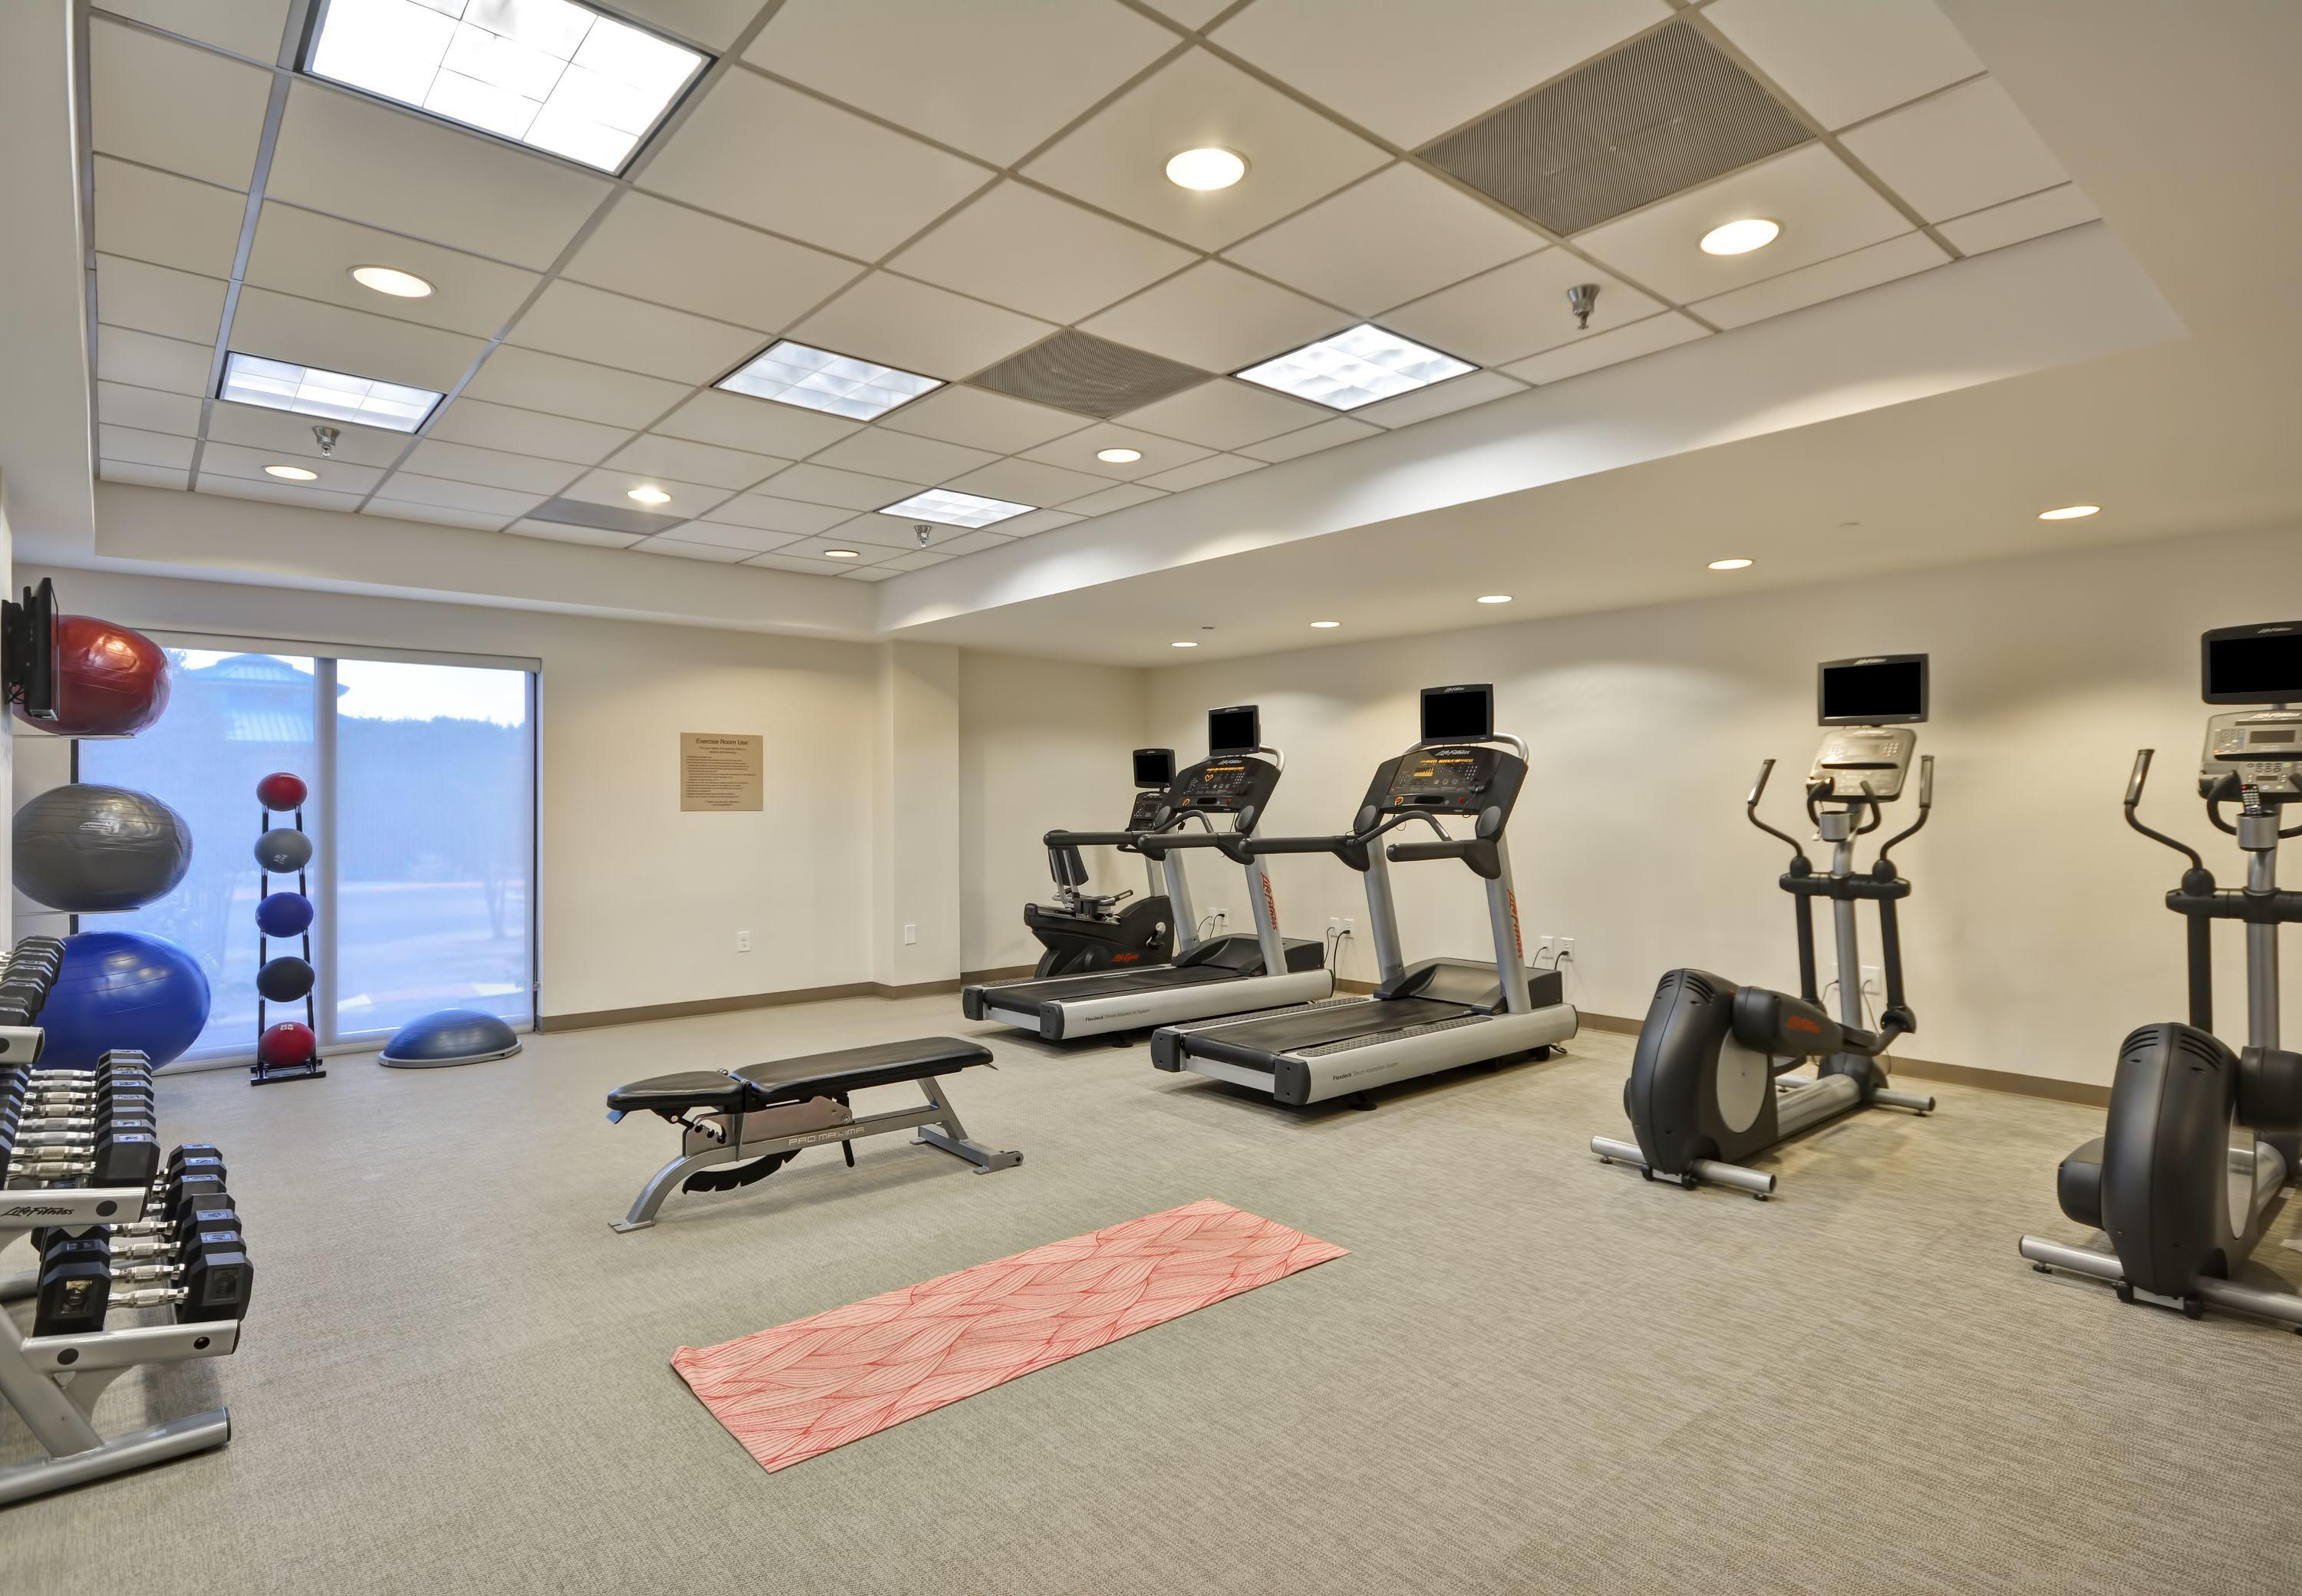 Located in San Antonio, within a km radius of Six Flags Fiesta Texas and The Shops at La Cantera, SpringHill Suites by Marriott San Antonio Northwest at The Rim provides accommodation with free WiFi throughout the property.